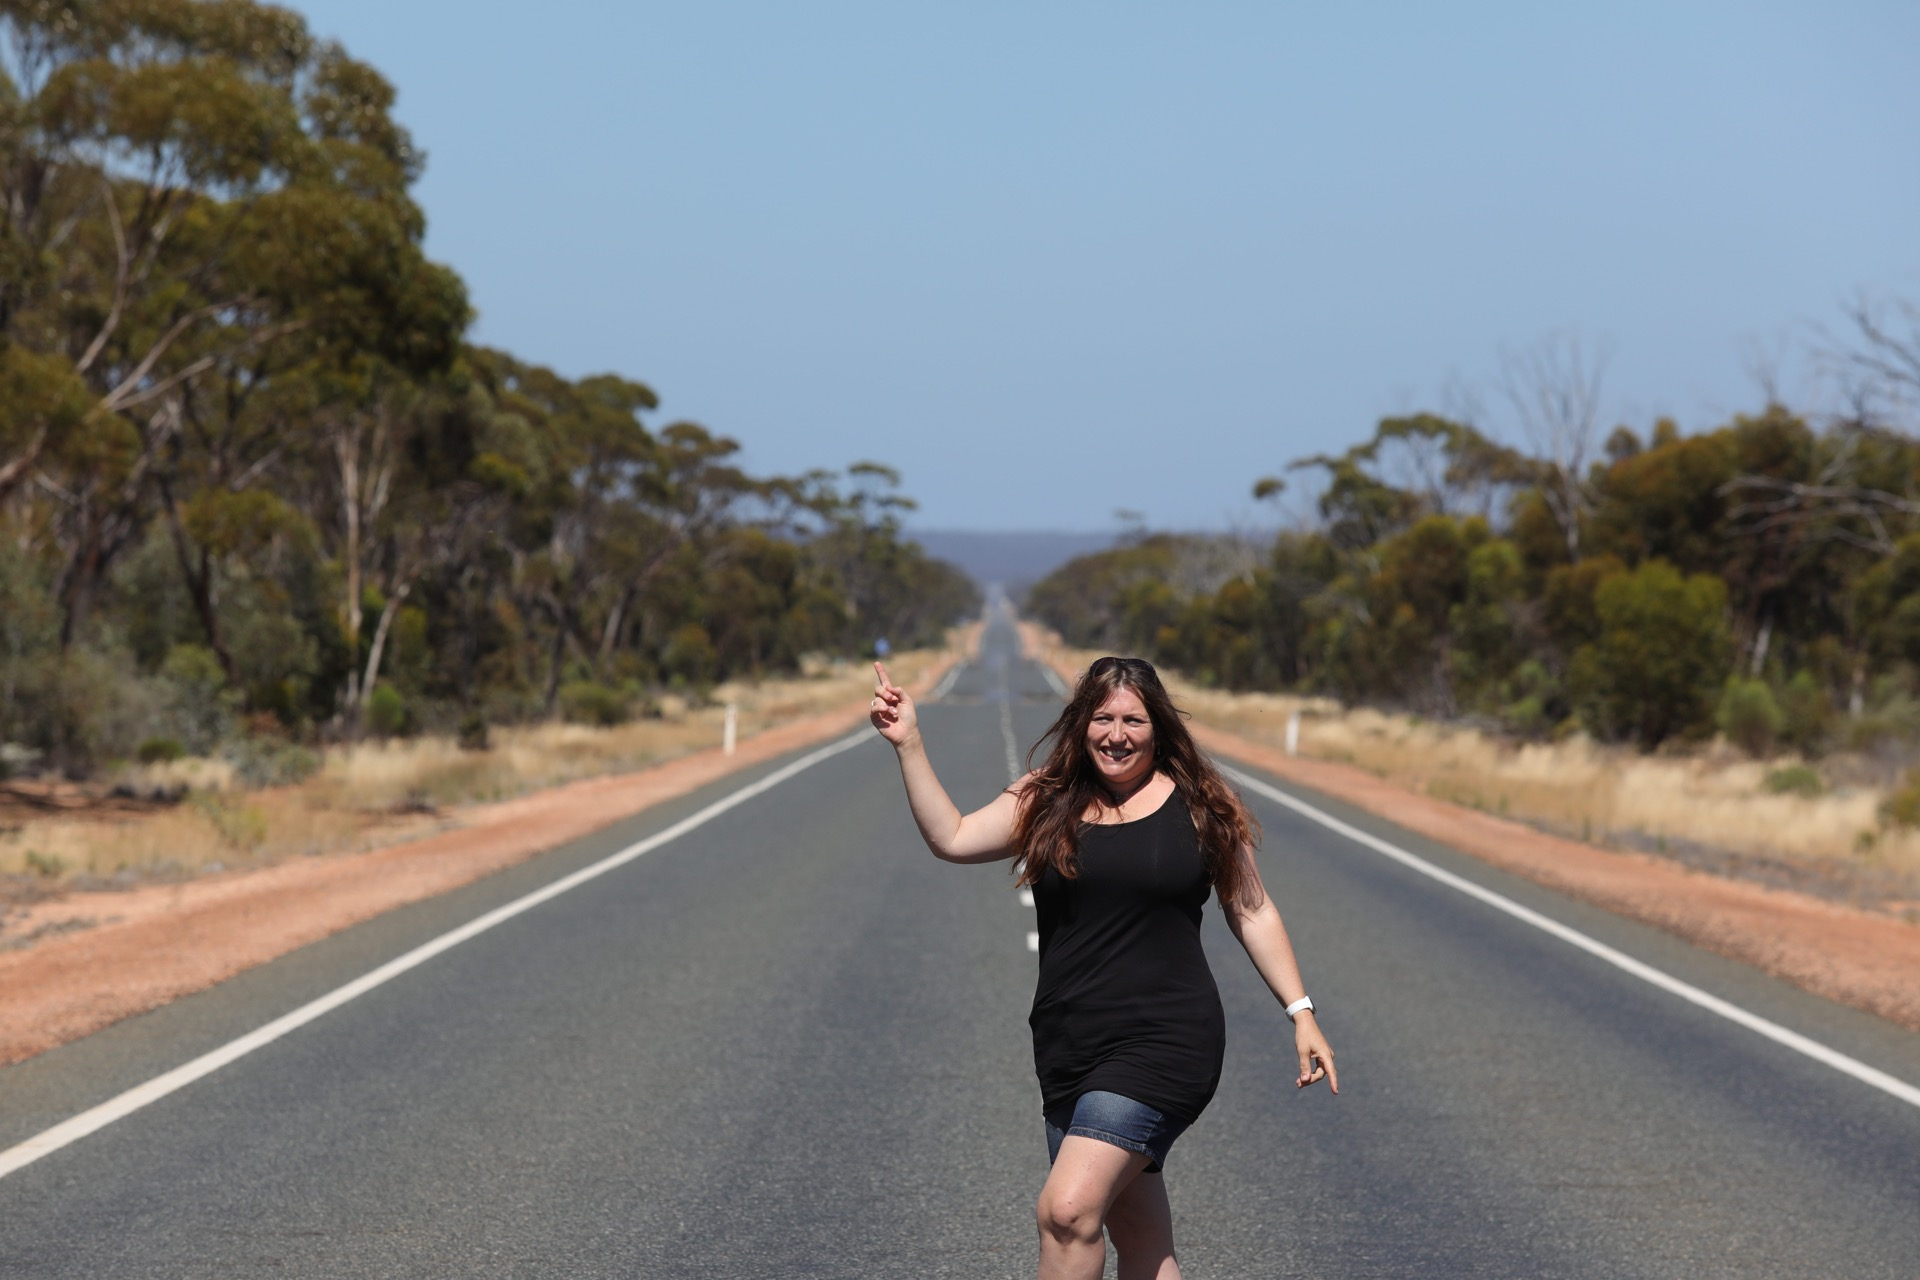 Dancing in the middle of the empty road!